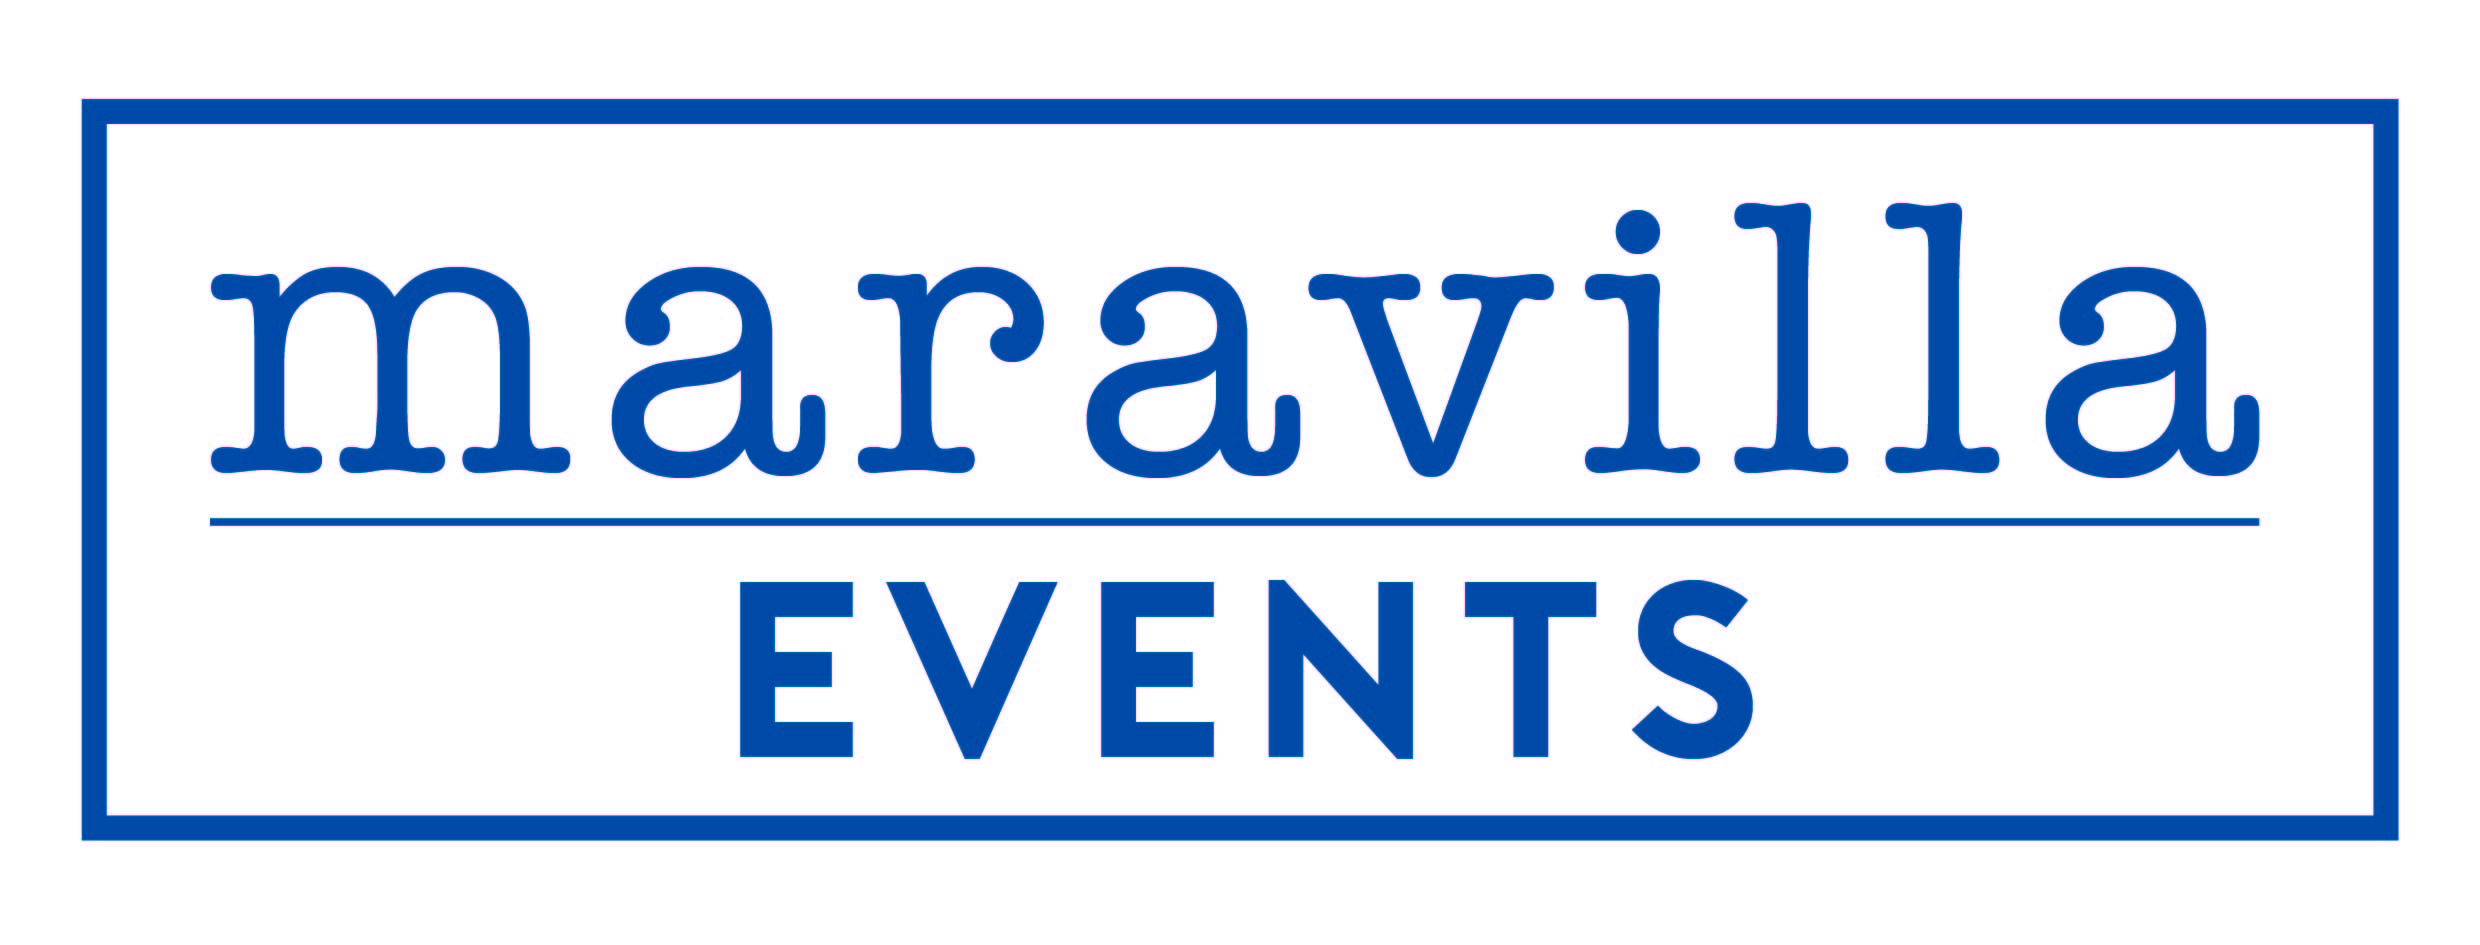 Events - Maravilla Media Group